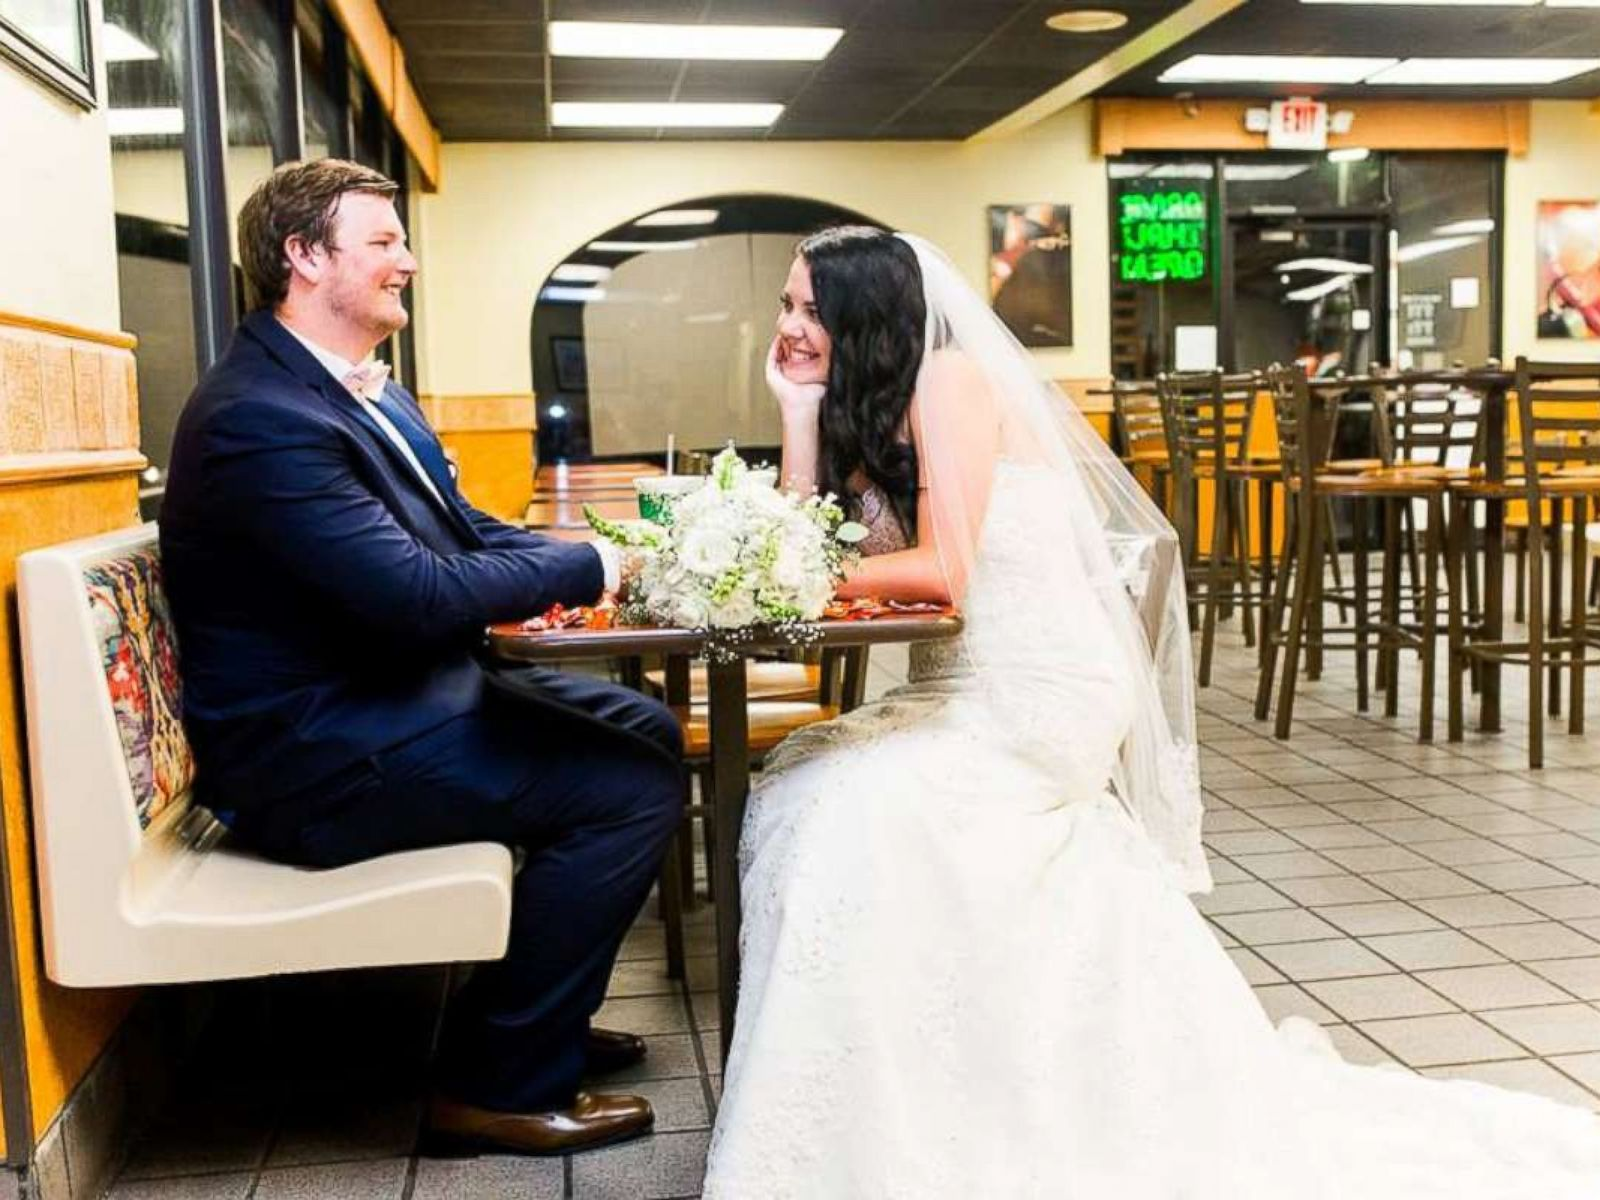 Taco Bell Wedding.Bride And Groom Spice Up Their Wedding Photos At Taco Bell Abc News